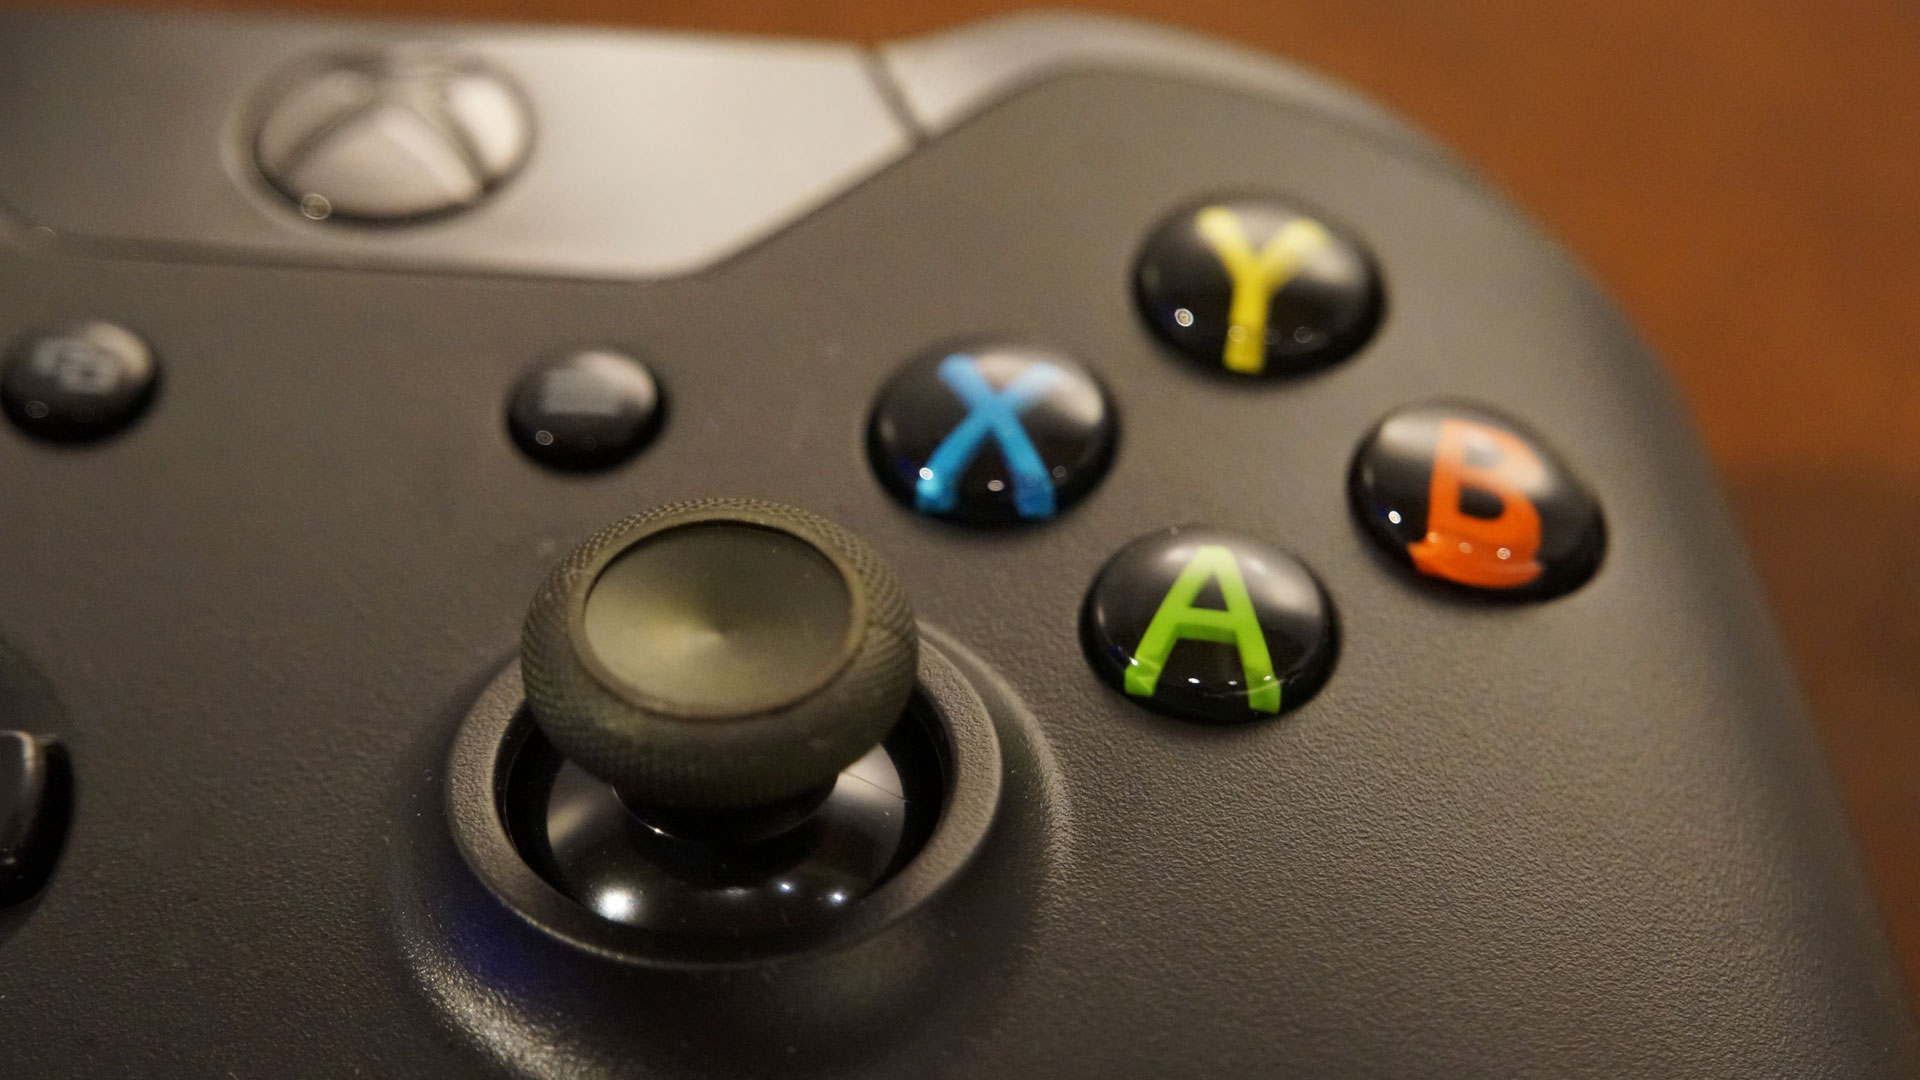 Xbox One Wallpapers Hd: 5 Awesome HD Gaming Controller Wallpapers